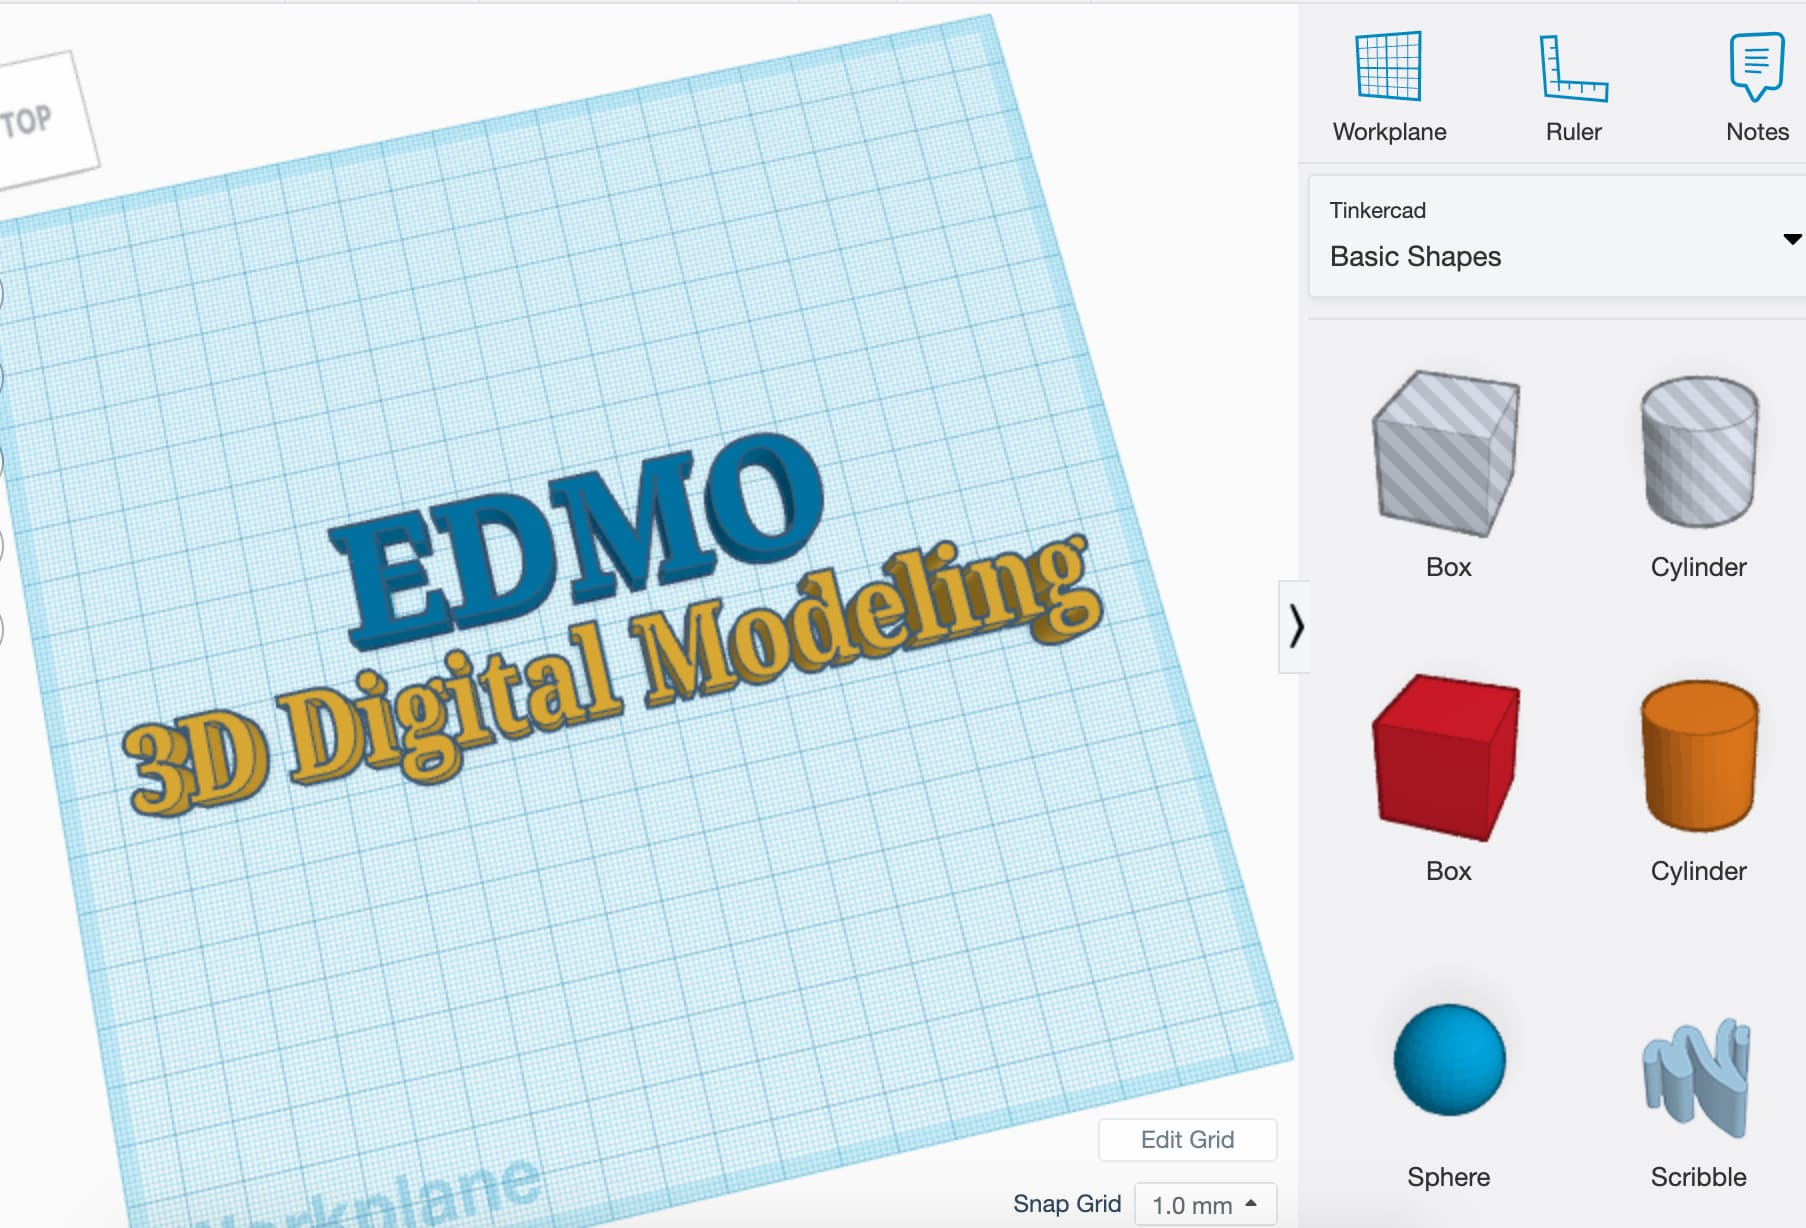 Build 3D digital models using the program TinkerCAD to complete fun design challenges!